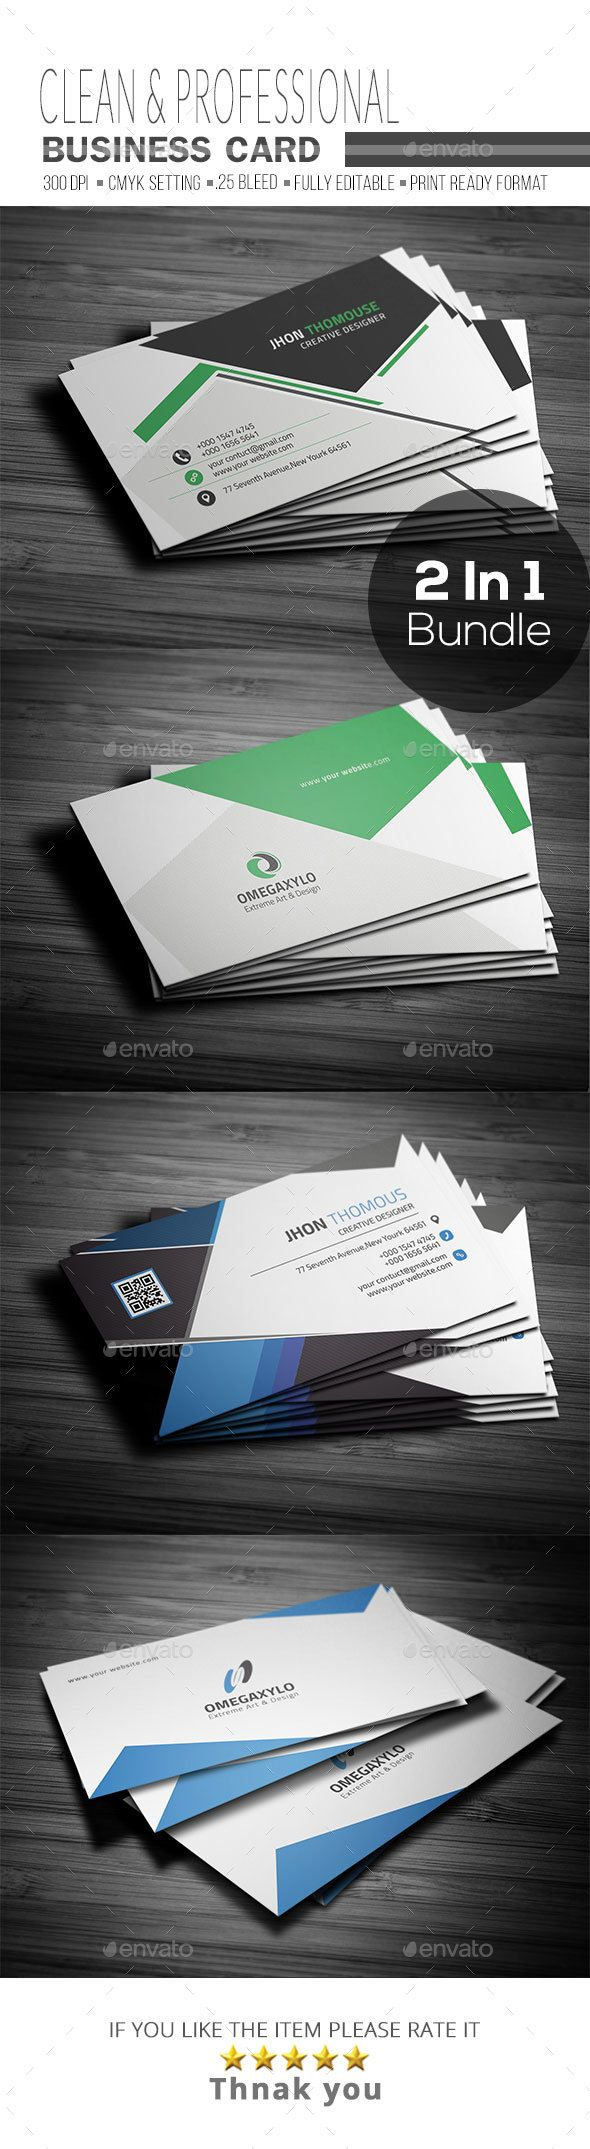 Best 25+ Visiting card printing ideas on Pinterest | Visiting card ...